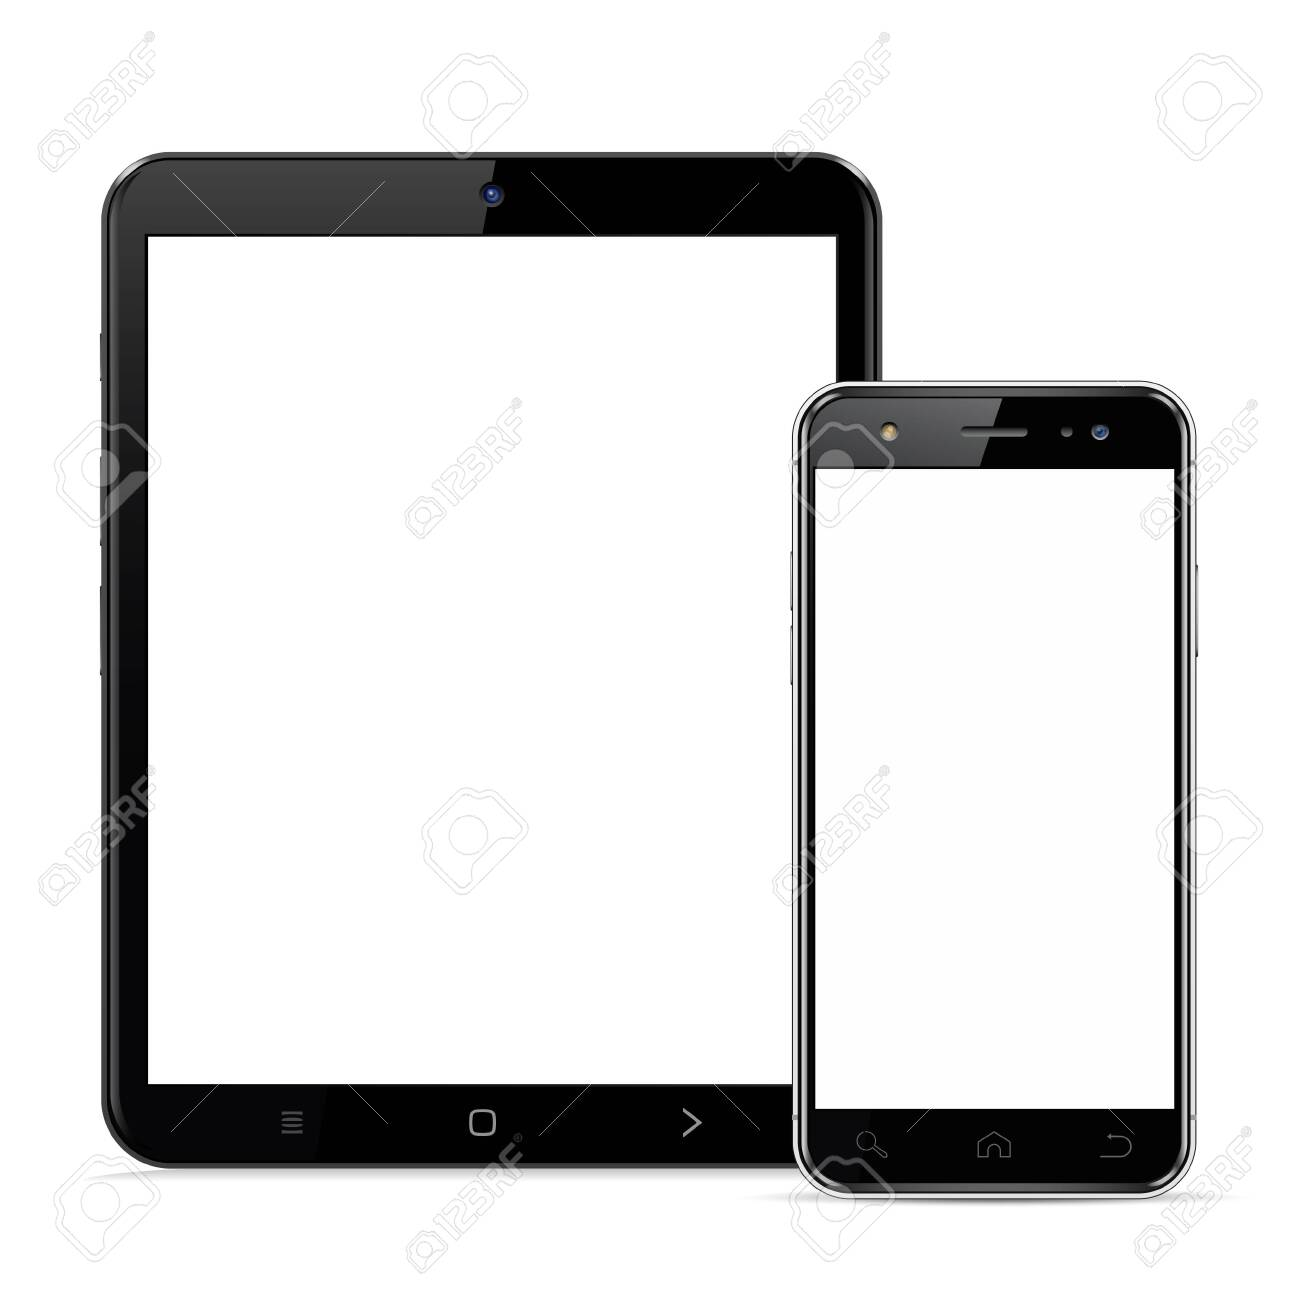 Tablet computer and smartphone template for adaptive design presentation - 150020465